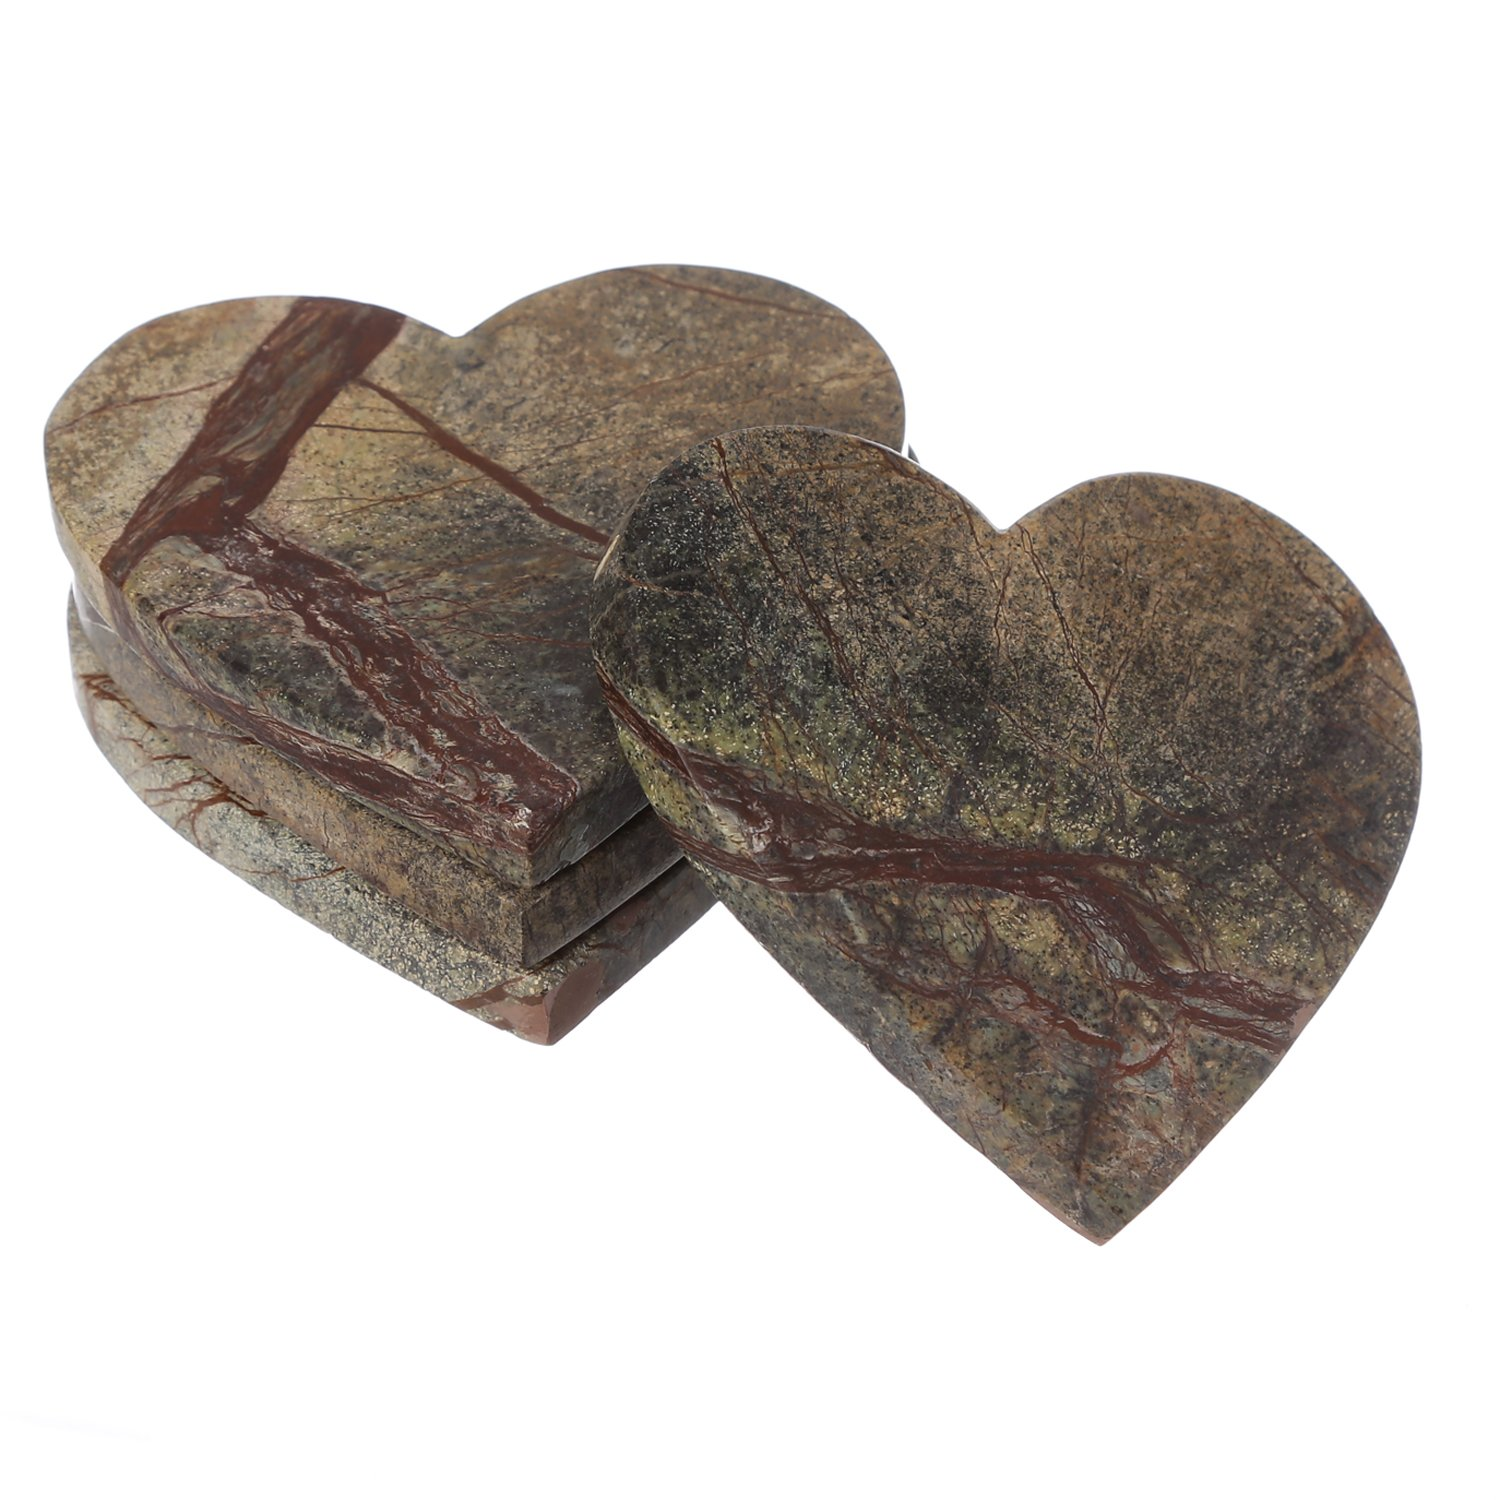 Shalinindia Handmade Love Heart Shape Marble Stone Tea Coasters Set of 4 for drink Size- 4X4X0.75 Inch Cocktail Coffee Dinning Table- Artisan Crafted In India (Brown Forest)